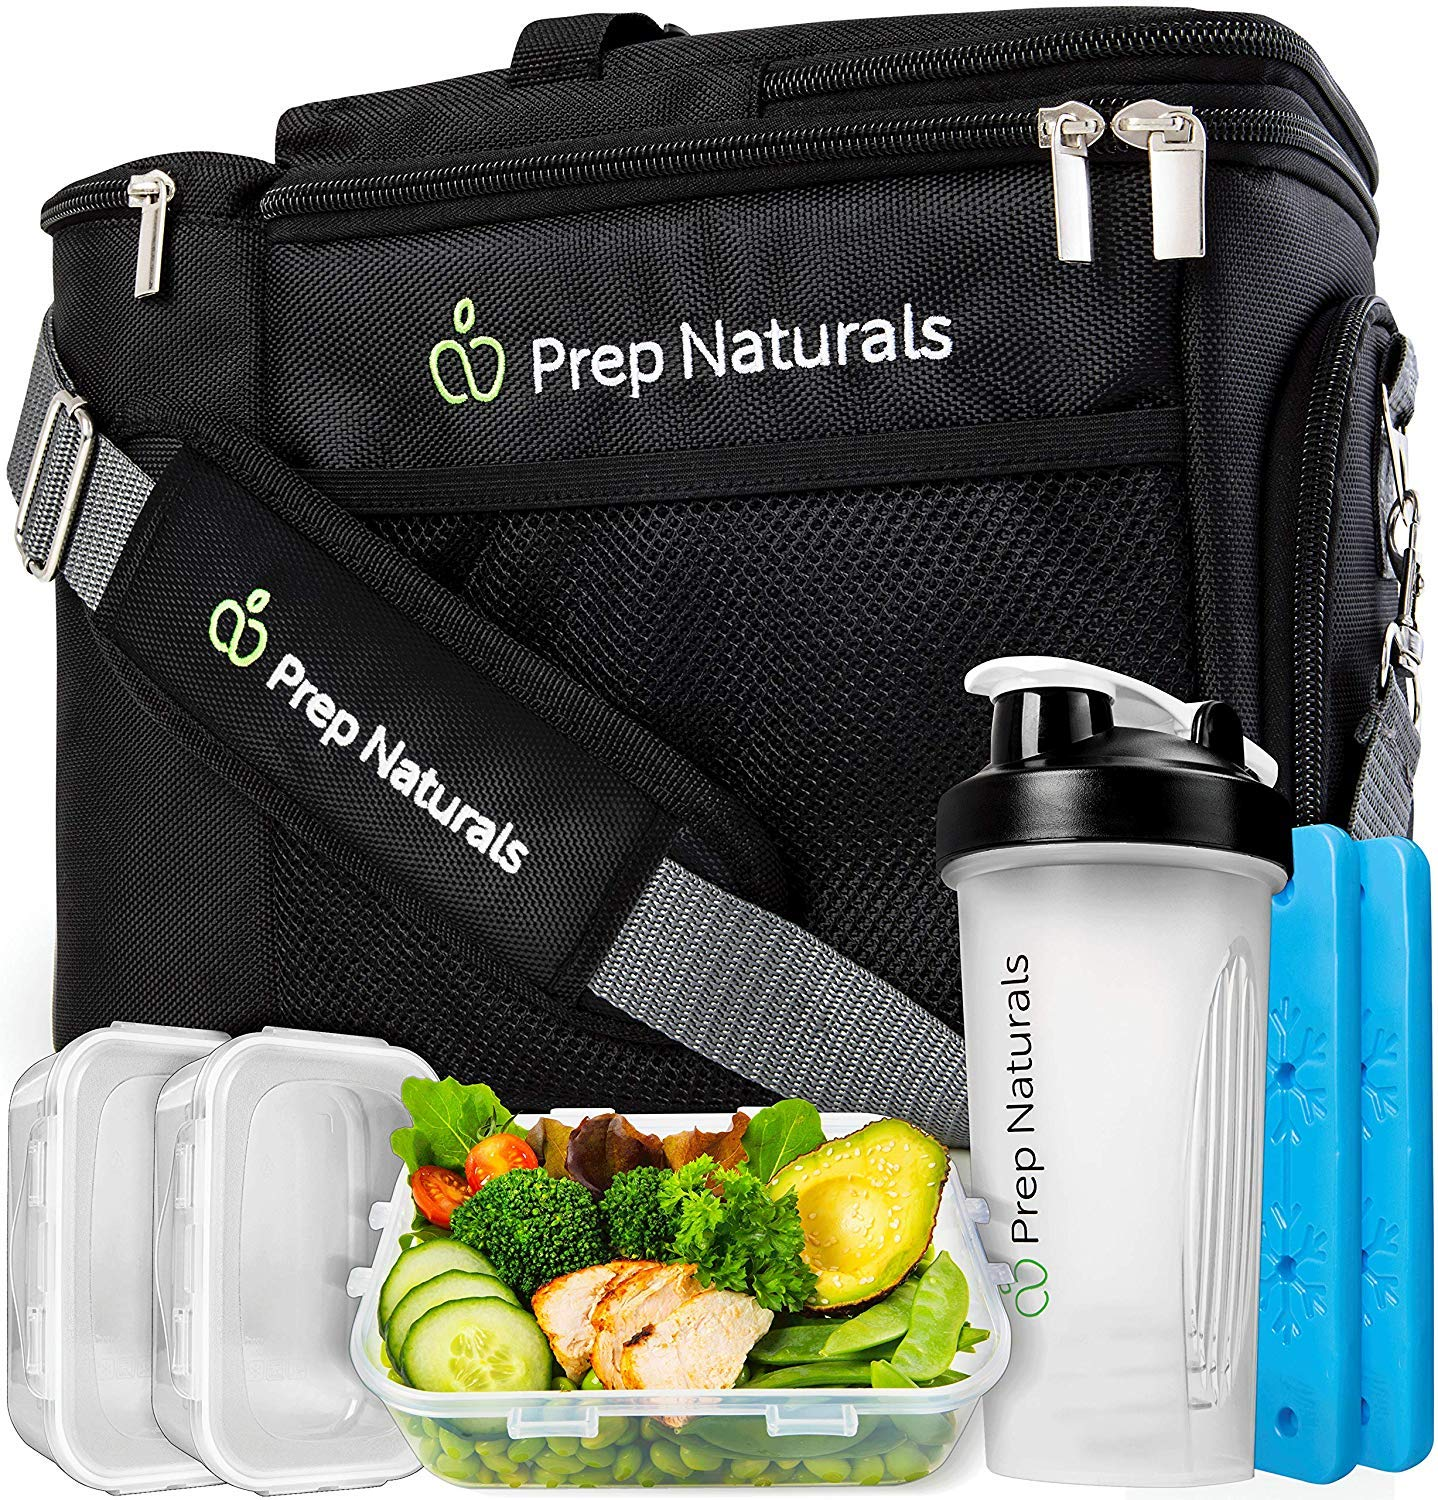 Meal Prep Bag Meal Prep Lunch Box - Meal Prep Insulated Lunch Bag for Men - Meal Prep Cooler Bag with Containers - Insulated Mens Lunch Box for Men Lunch Bags for Women Men's Lunch Bag For Work Adult by Prep Naturals